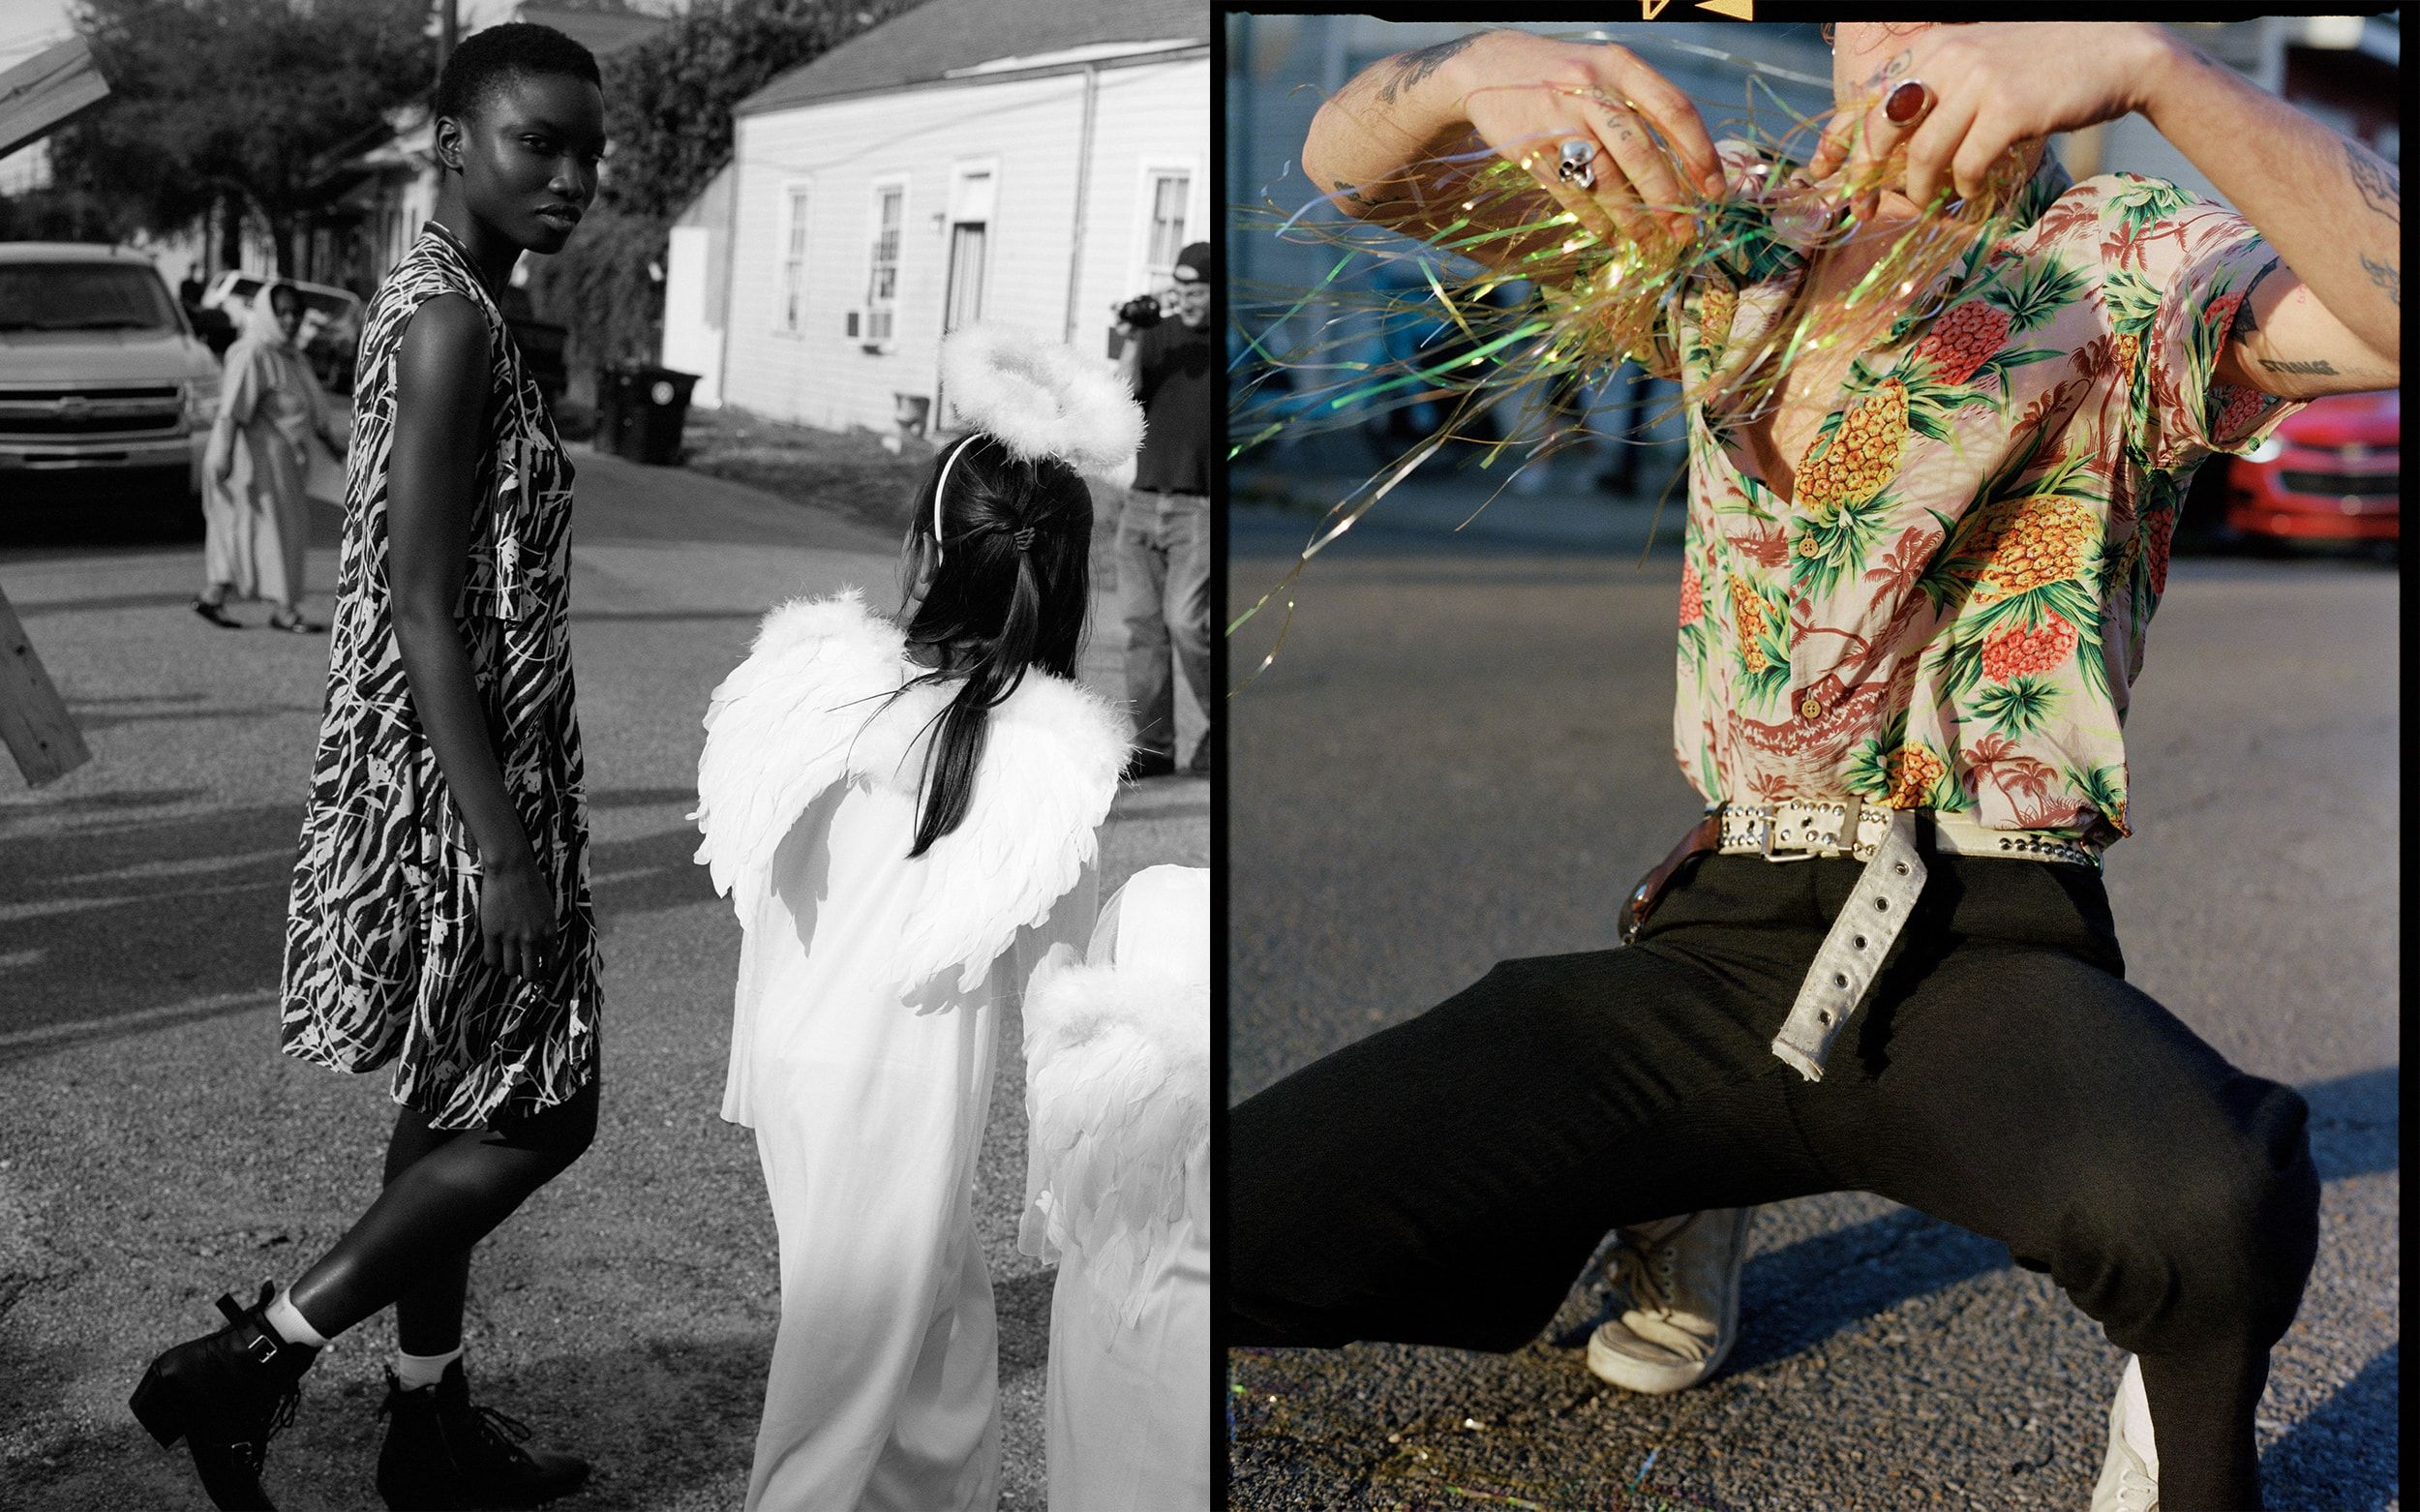 Two photographs from our Lost In New Orleans campaign, depicting a black-and-white image of a young woman crossing the road in a graphic short-length dress, and a young man wearing a Hawaiian shirt crouched down in the street.